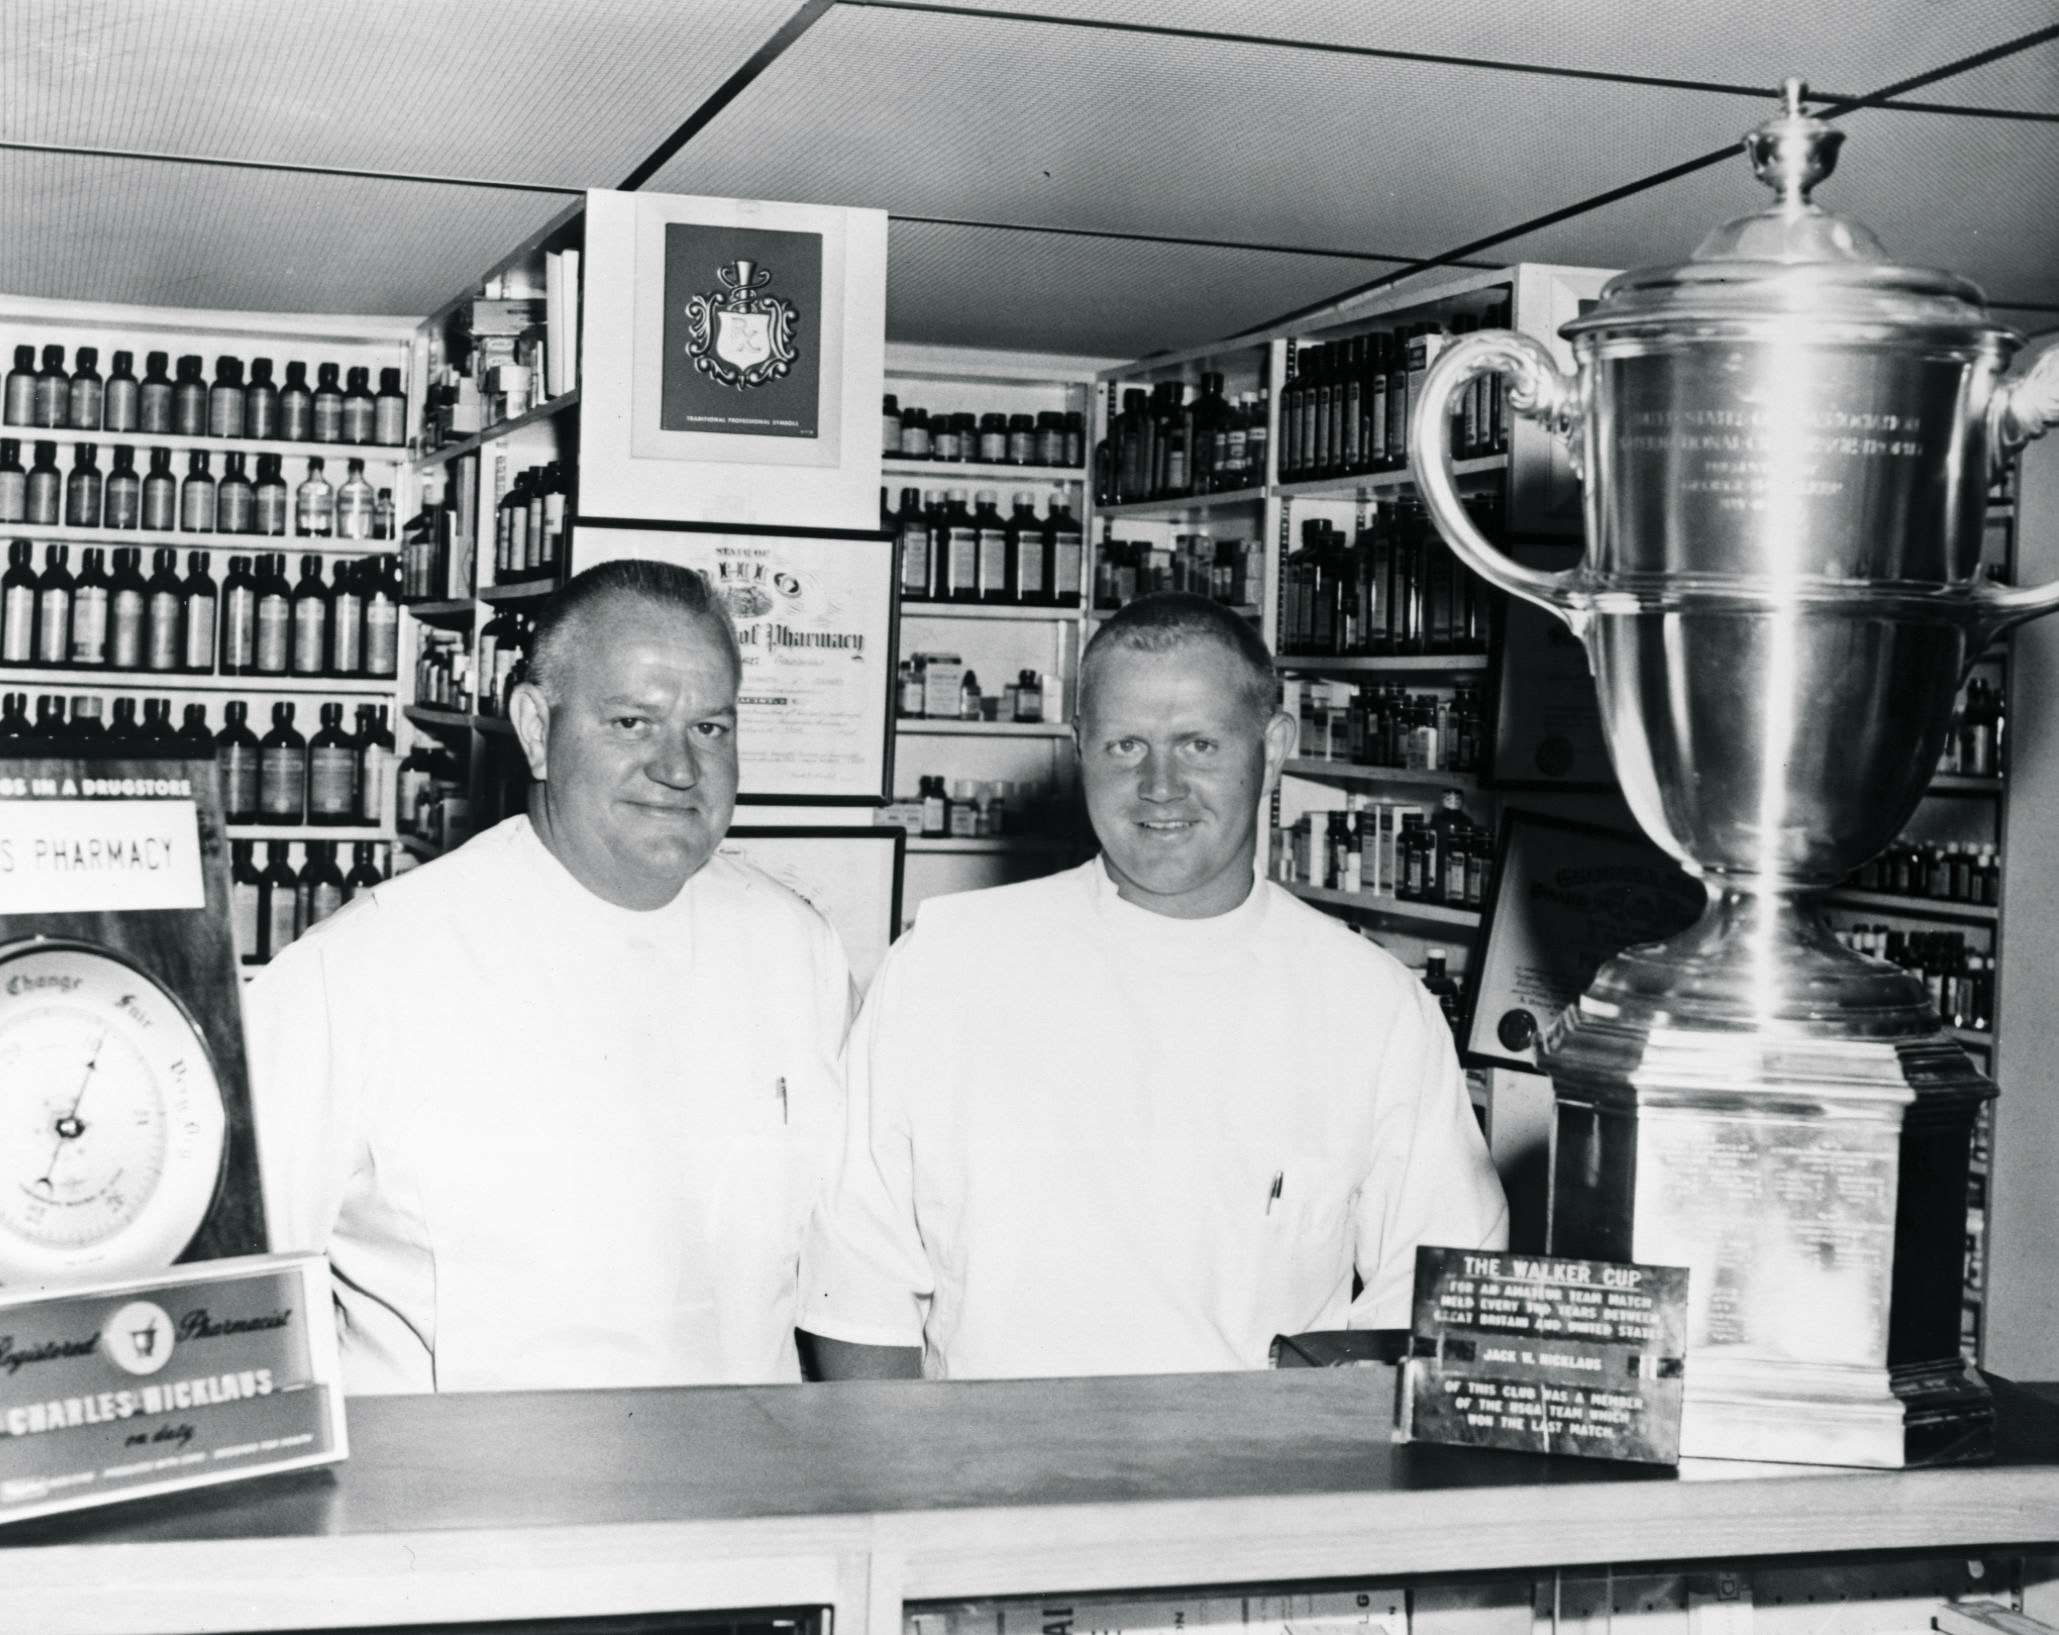 Jack Nicklaus at his father Charlie's pharmacy in 1960.